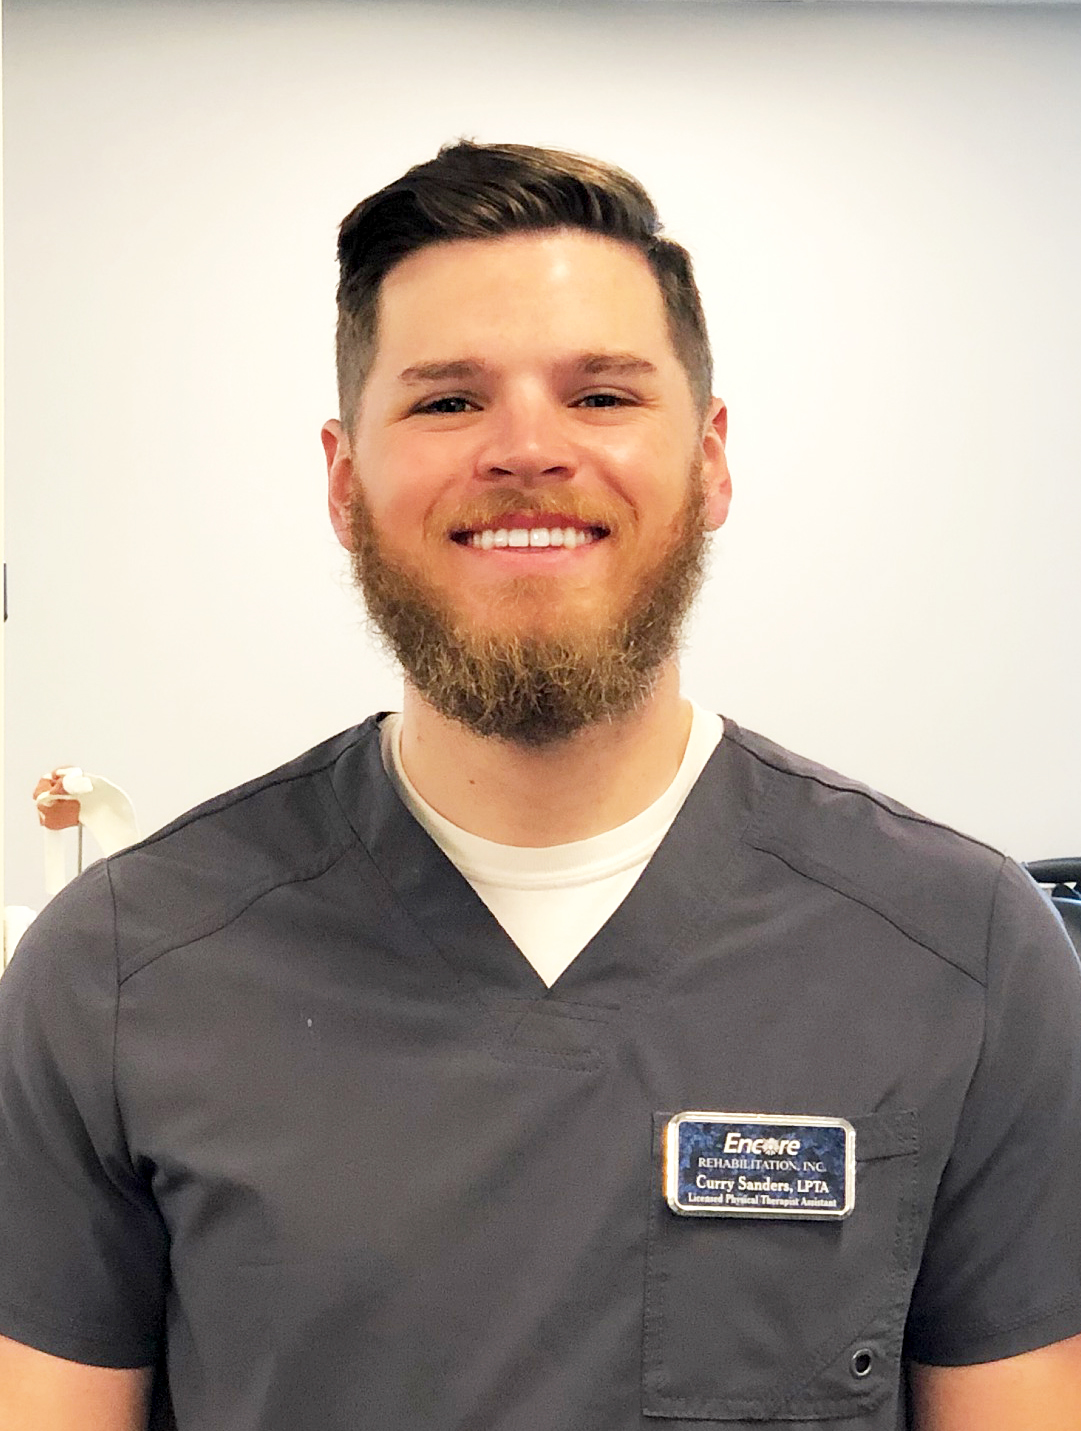 Licensed Physical Therapist Assistant Curry Sanders with Encore Rehabilitation-Fairhope #EncoreRehab